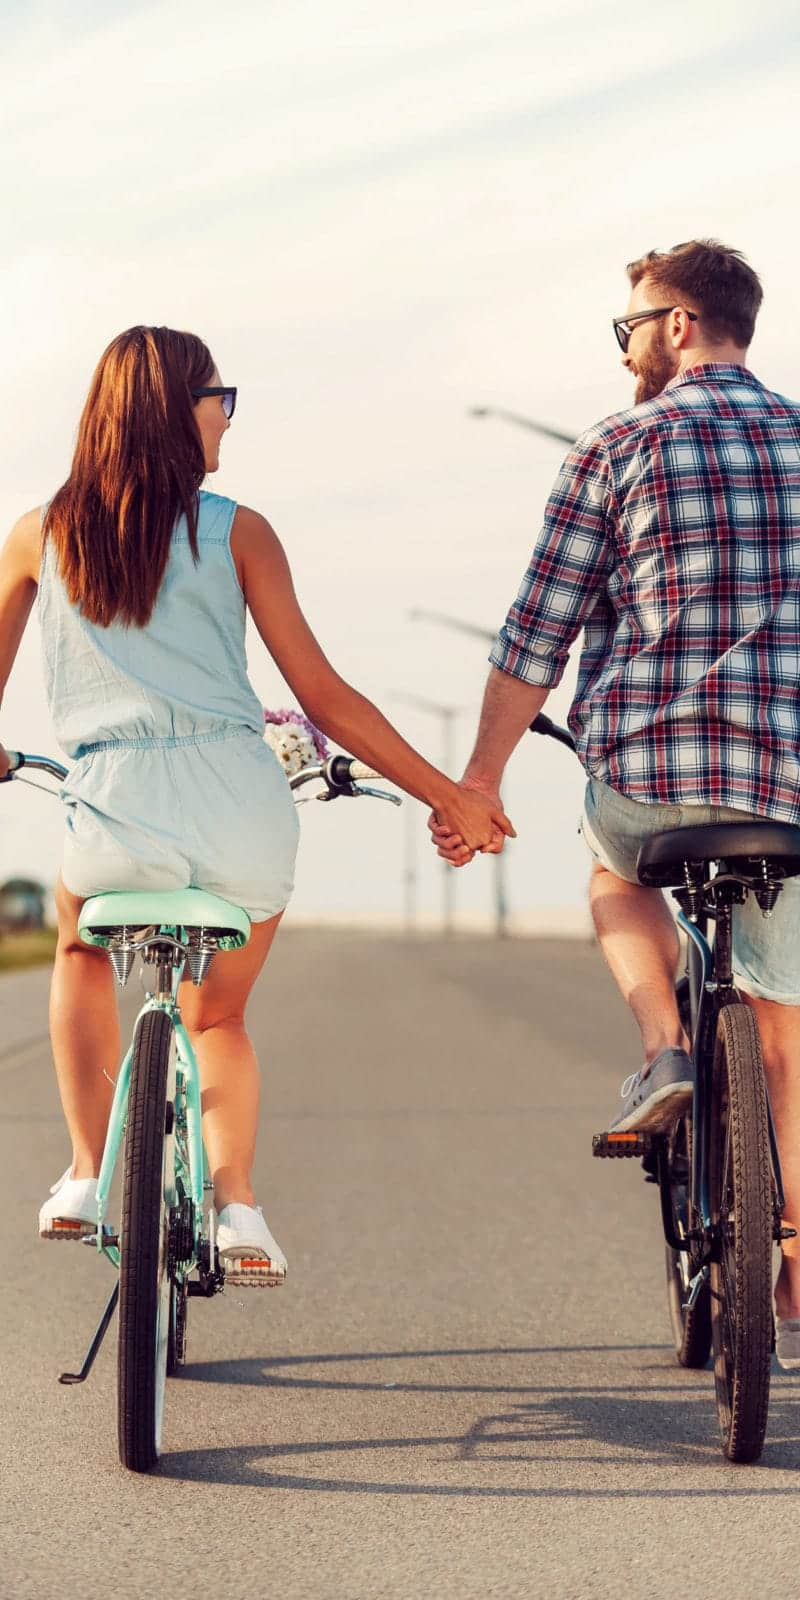 rear view of young couple holding hands while riding on bicycles along the road